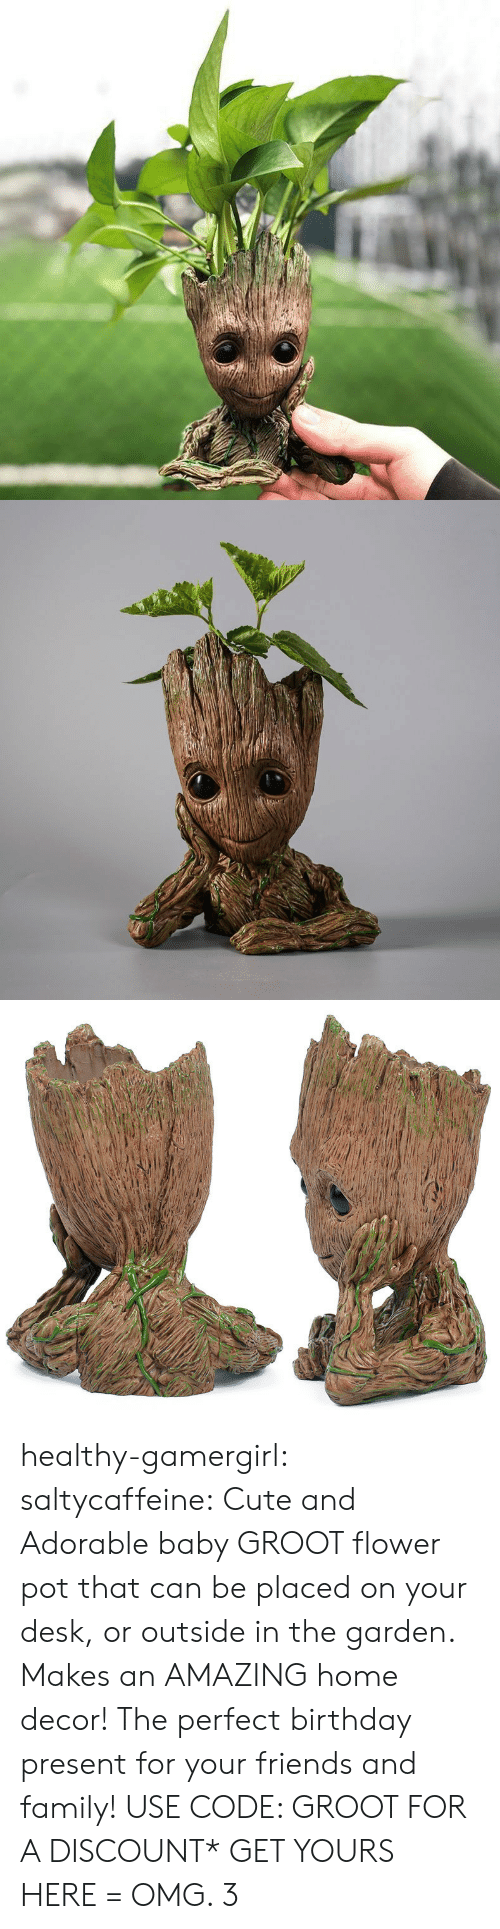 Birthday, Cute, and Family: healthy-gamergirl:  saltycaffeine: Cute and Adorable baby GROOT flower pot that can be placed on your desk, or outside in the garden. Makes an AMAZING home decor! The perfect birthday present for your friends and family! USE CODE: GROOT FOR A DISCOUNT* GET YOURS HERE =  OMG. 3